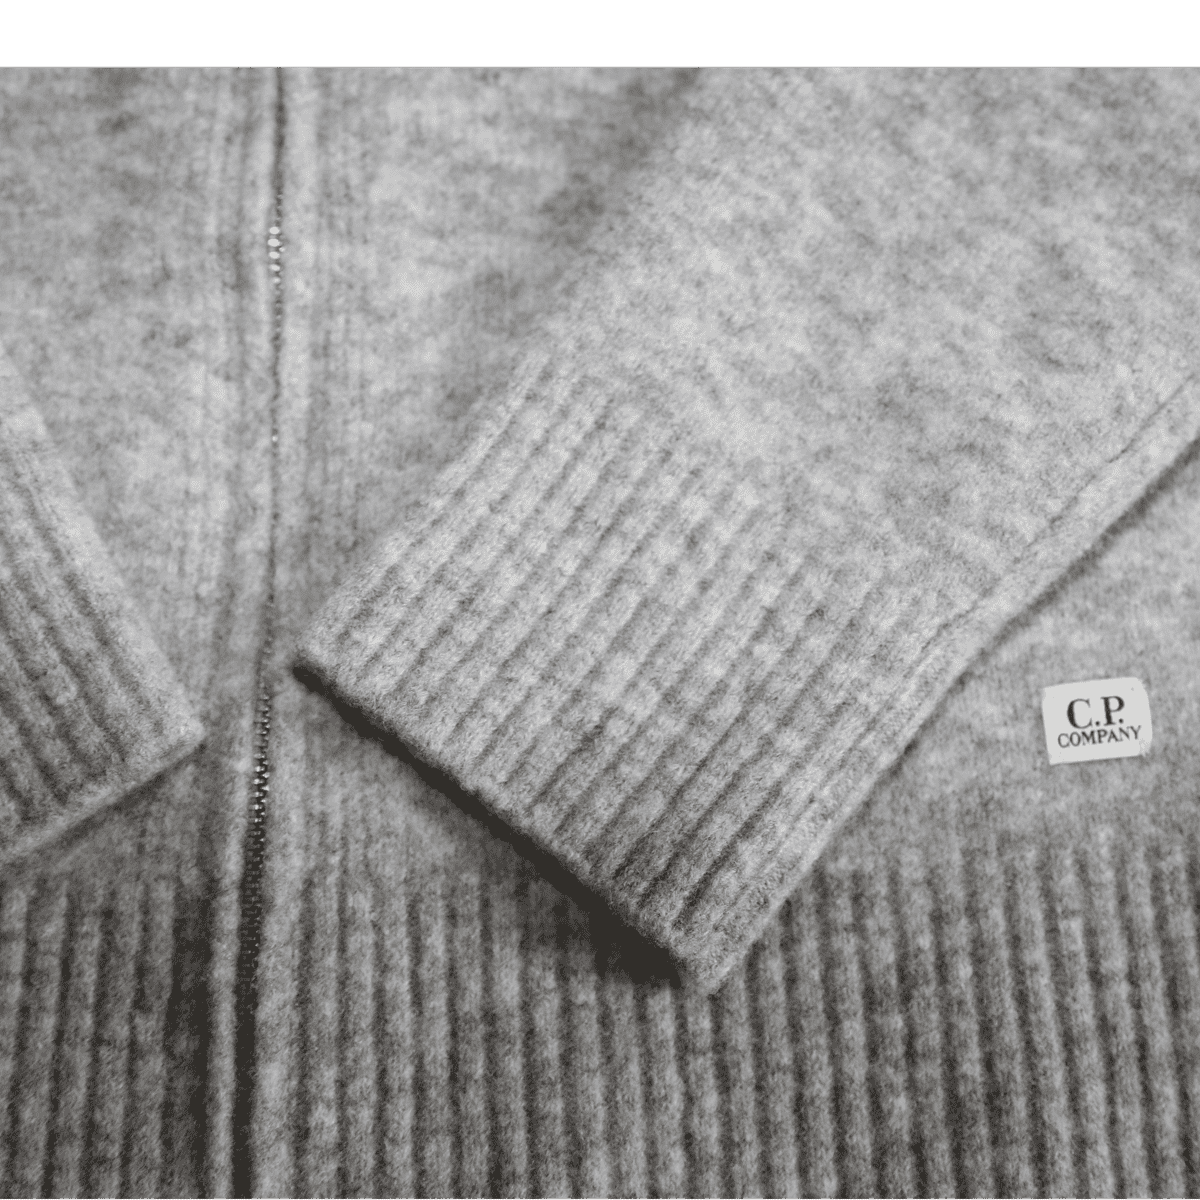 Cabinero Stiles Herrenmode Onlineshop C.P.Company Cardigan-Strickjacke in Grau #03CMKN166A-005103A AW17-18 1